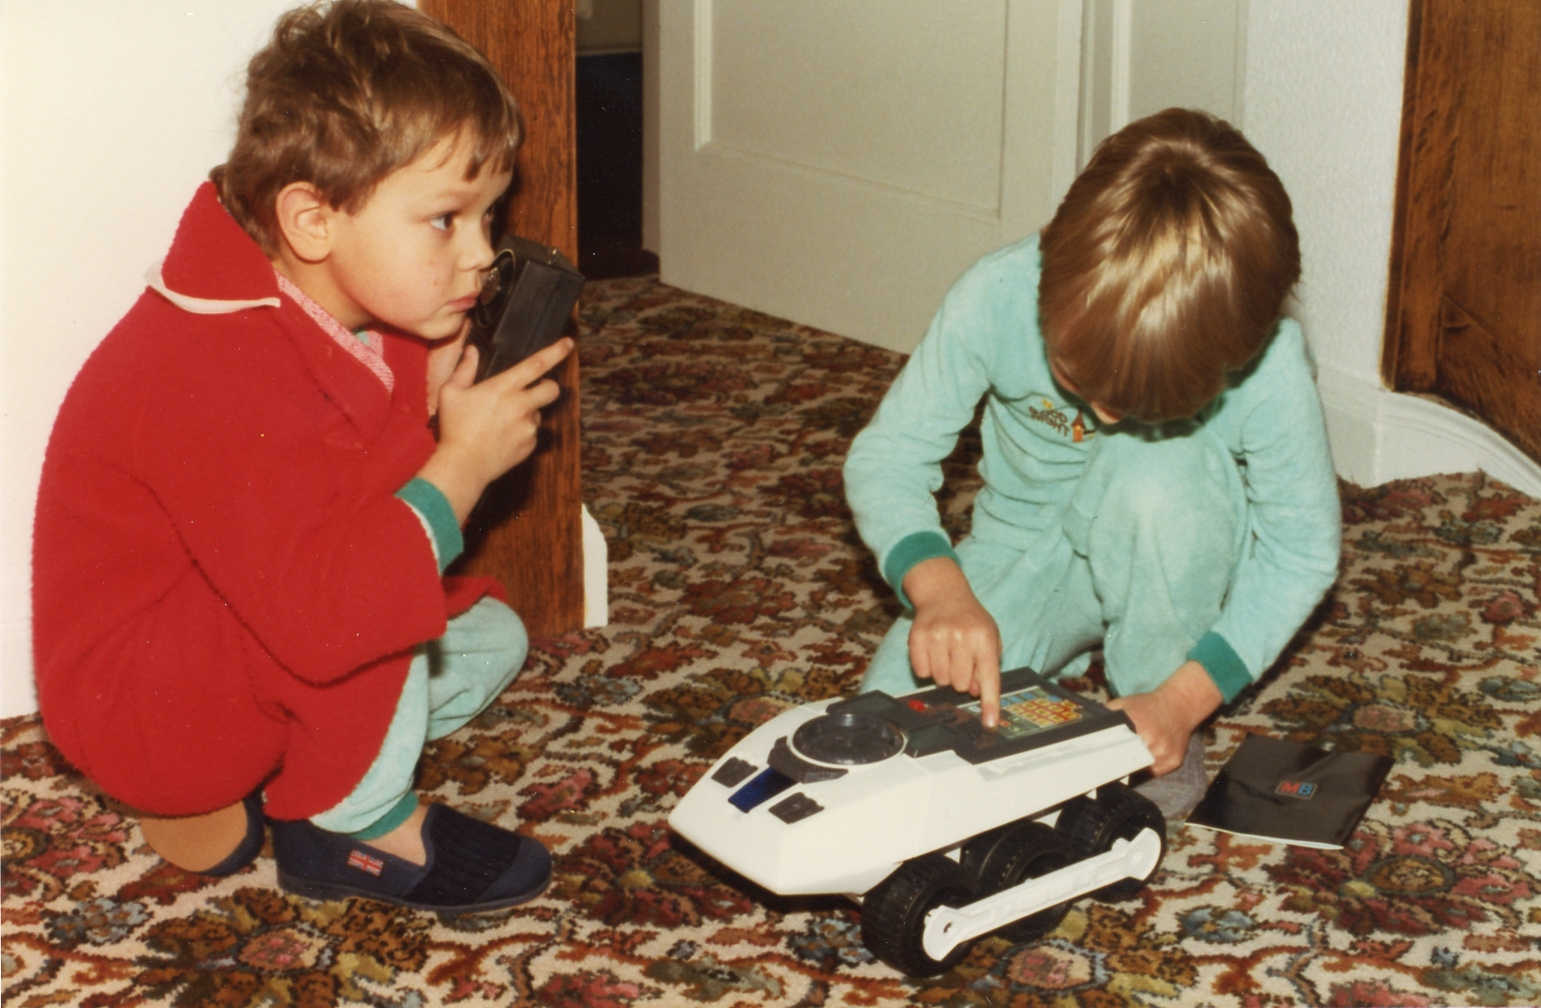 An old scanned photograph showing two boys playing with a new present.